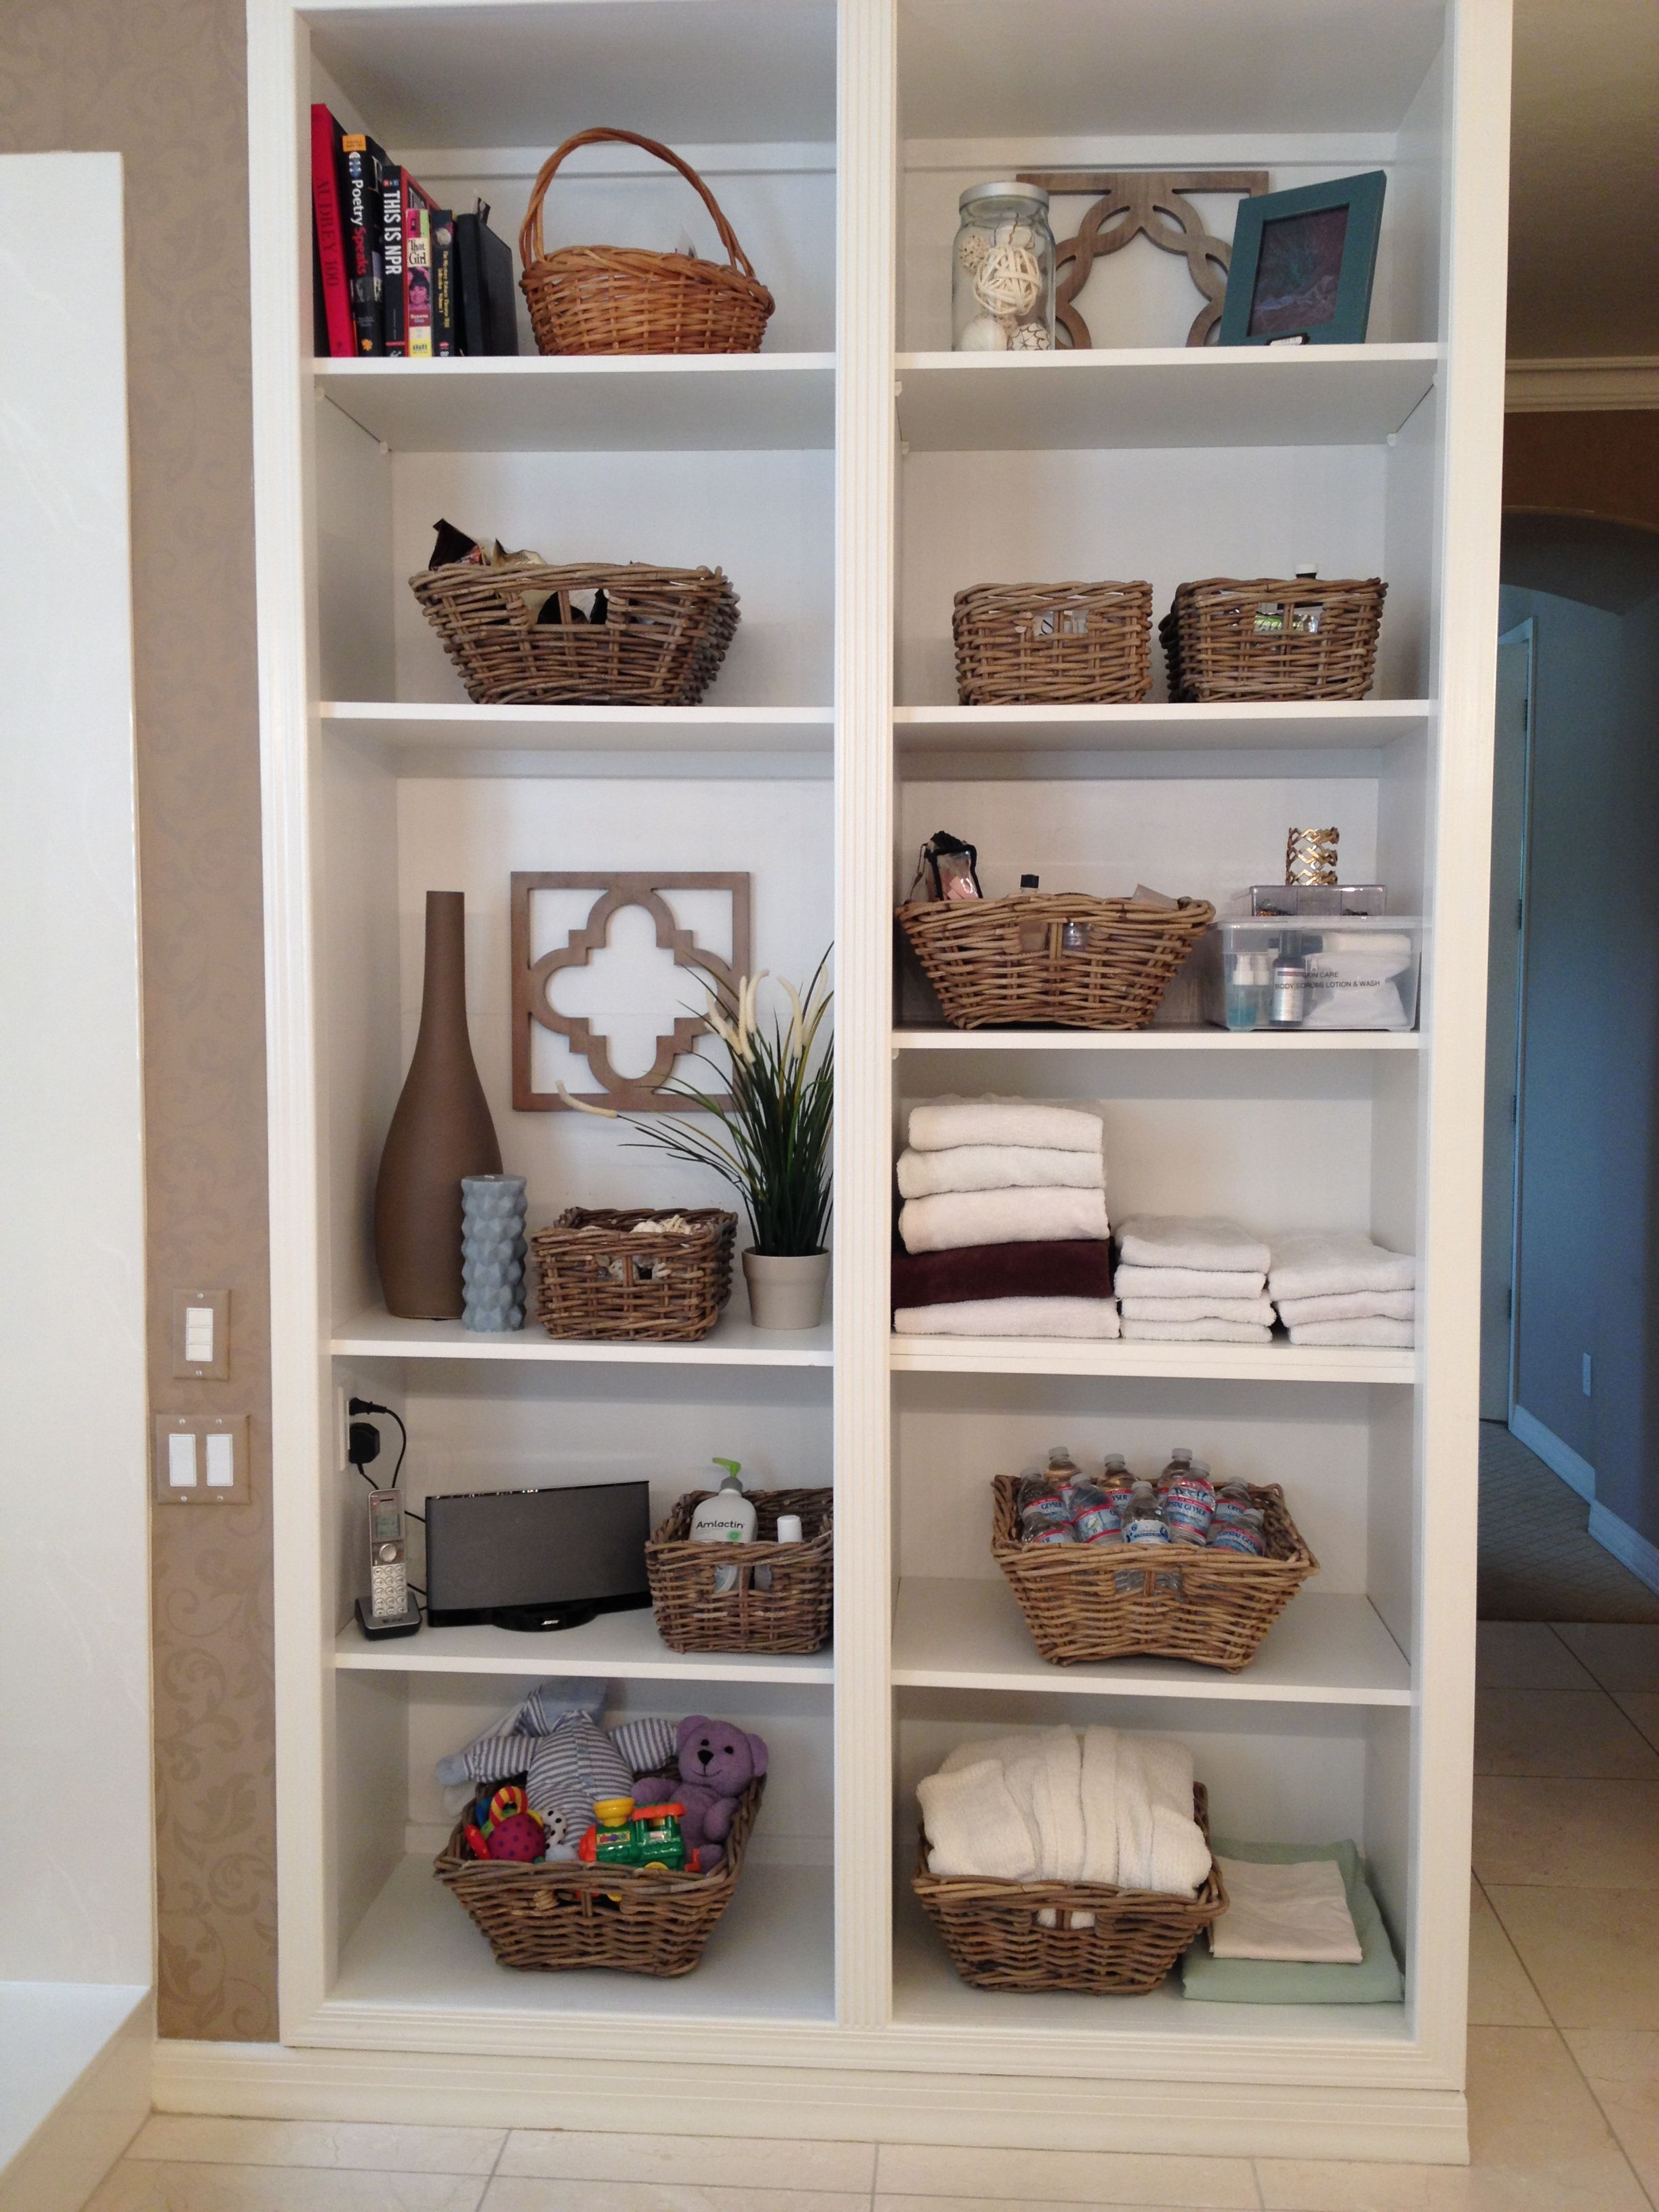 Organizing Open Shelving In The Bathroom